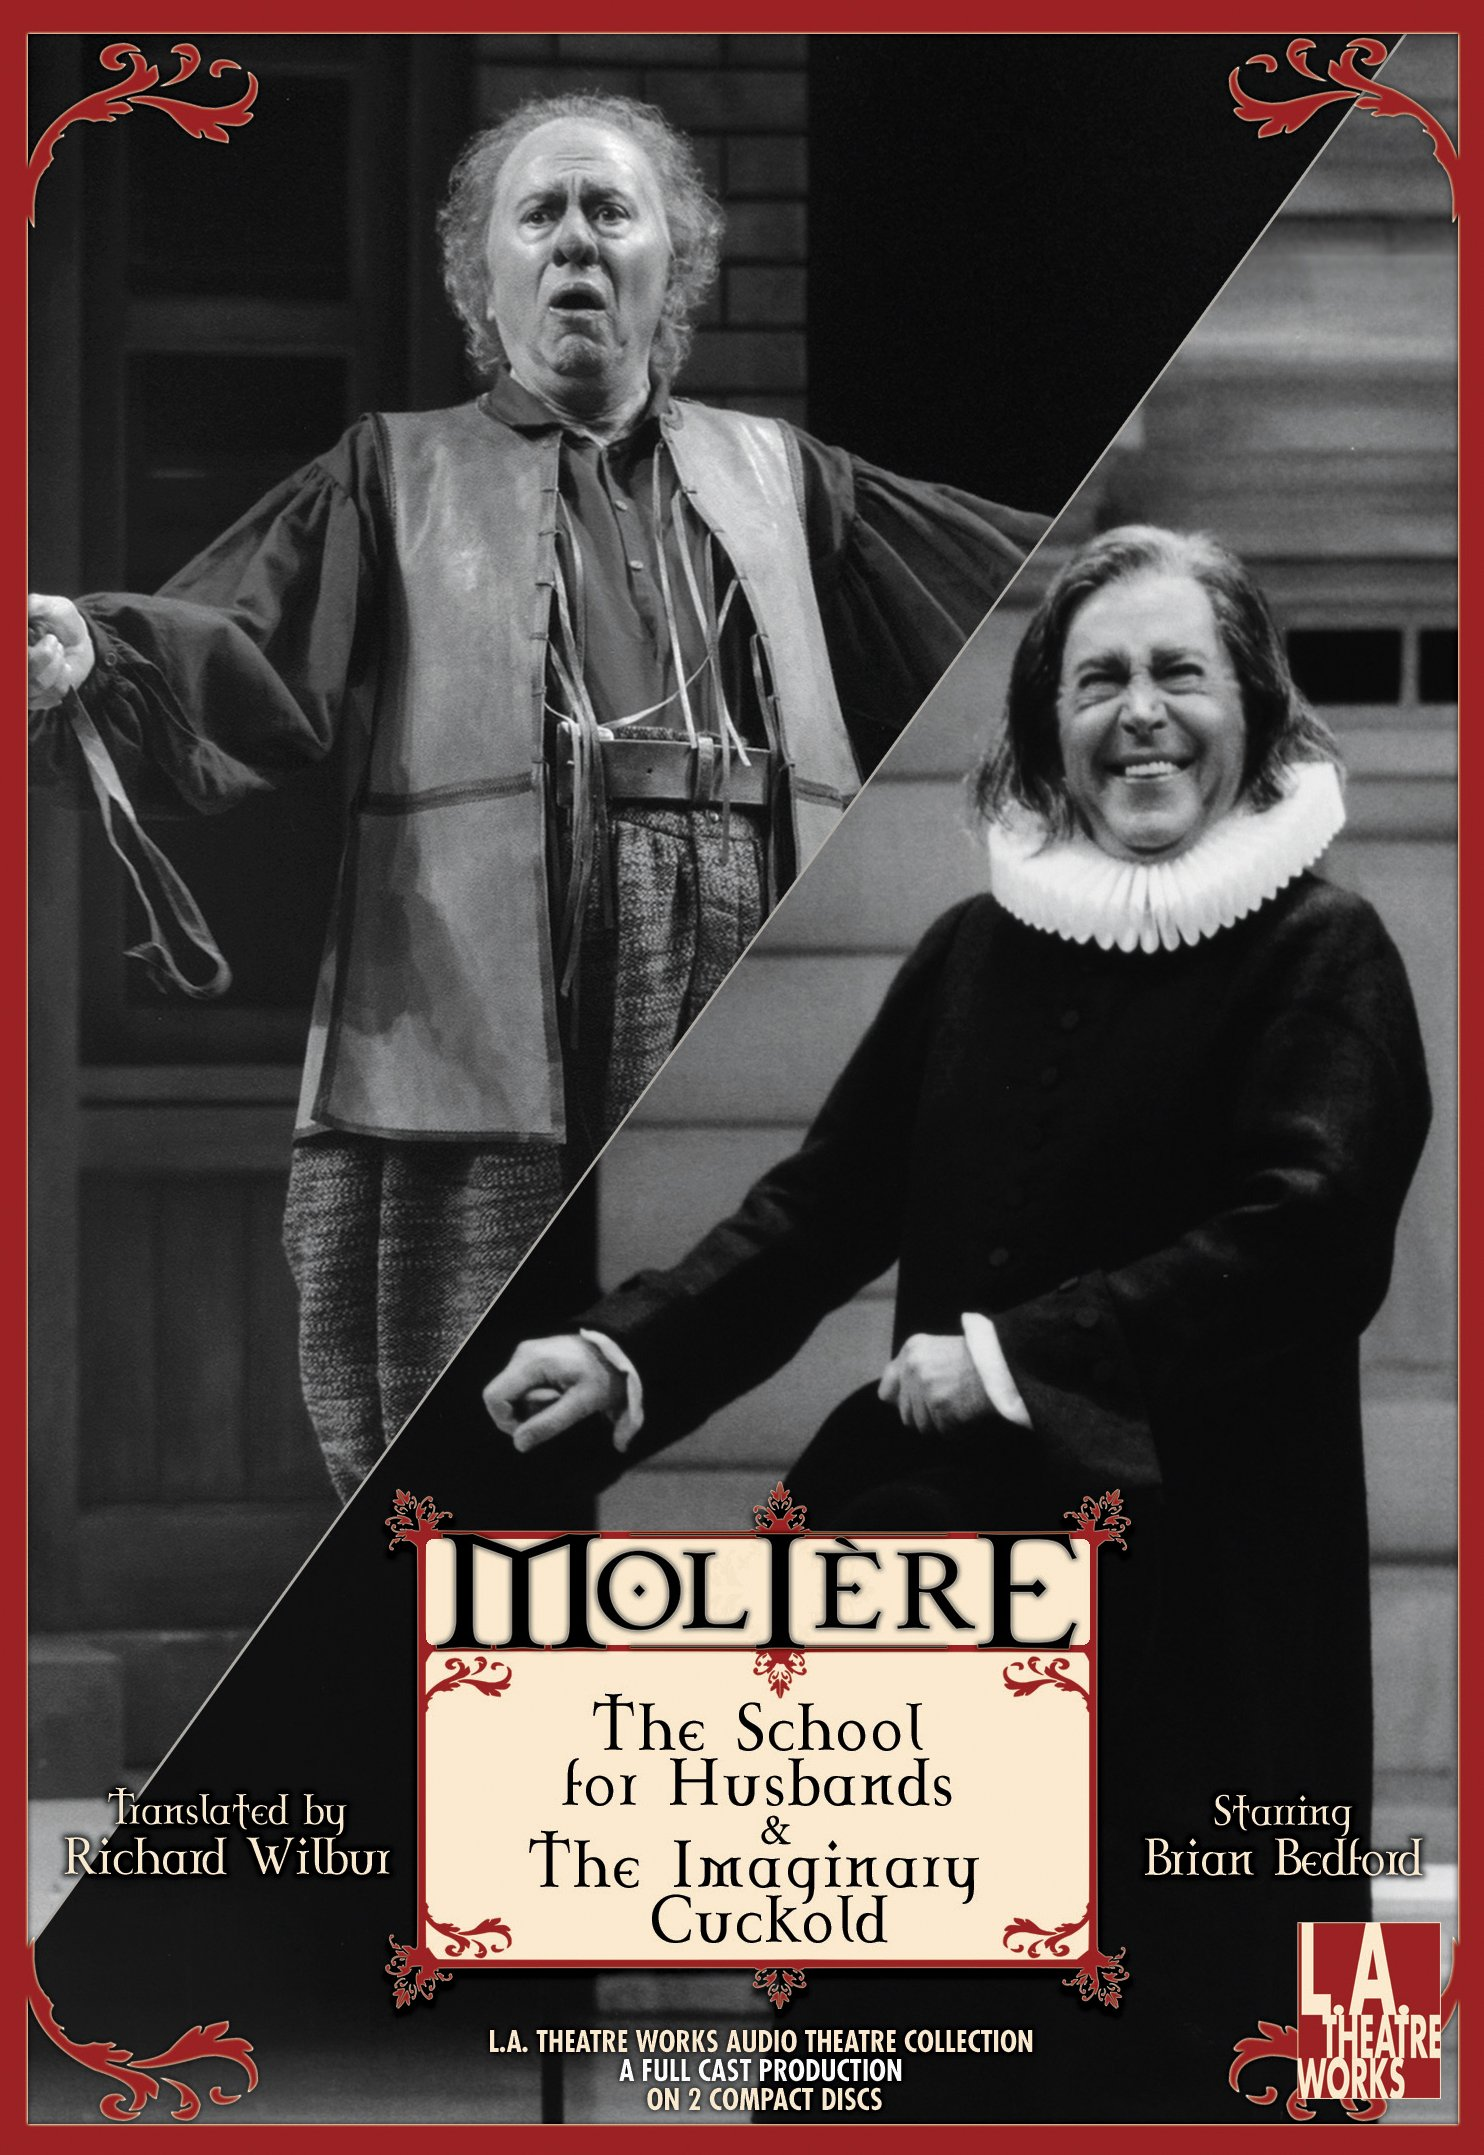 Download The School for Husbands and The Imaginary Cuckold (Library Edition Audio CDs) (L.A. Theatre Works Audio Theatre Collections) PDF